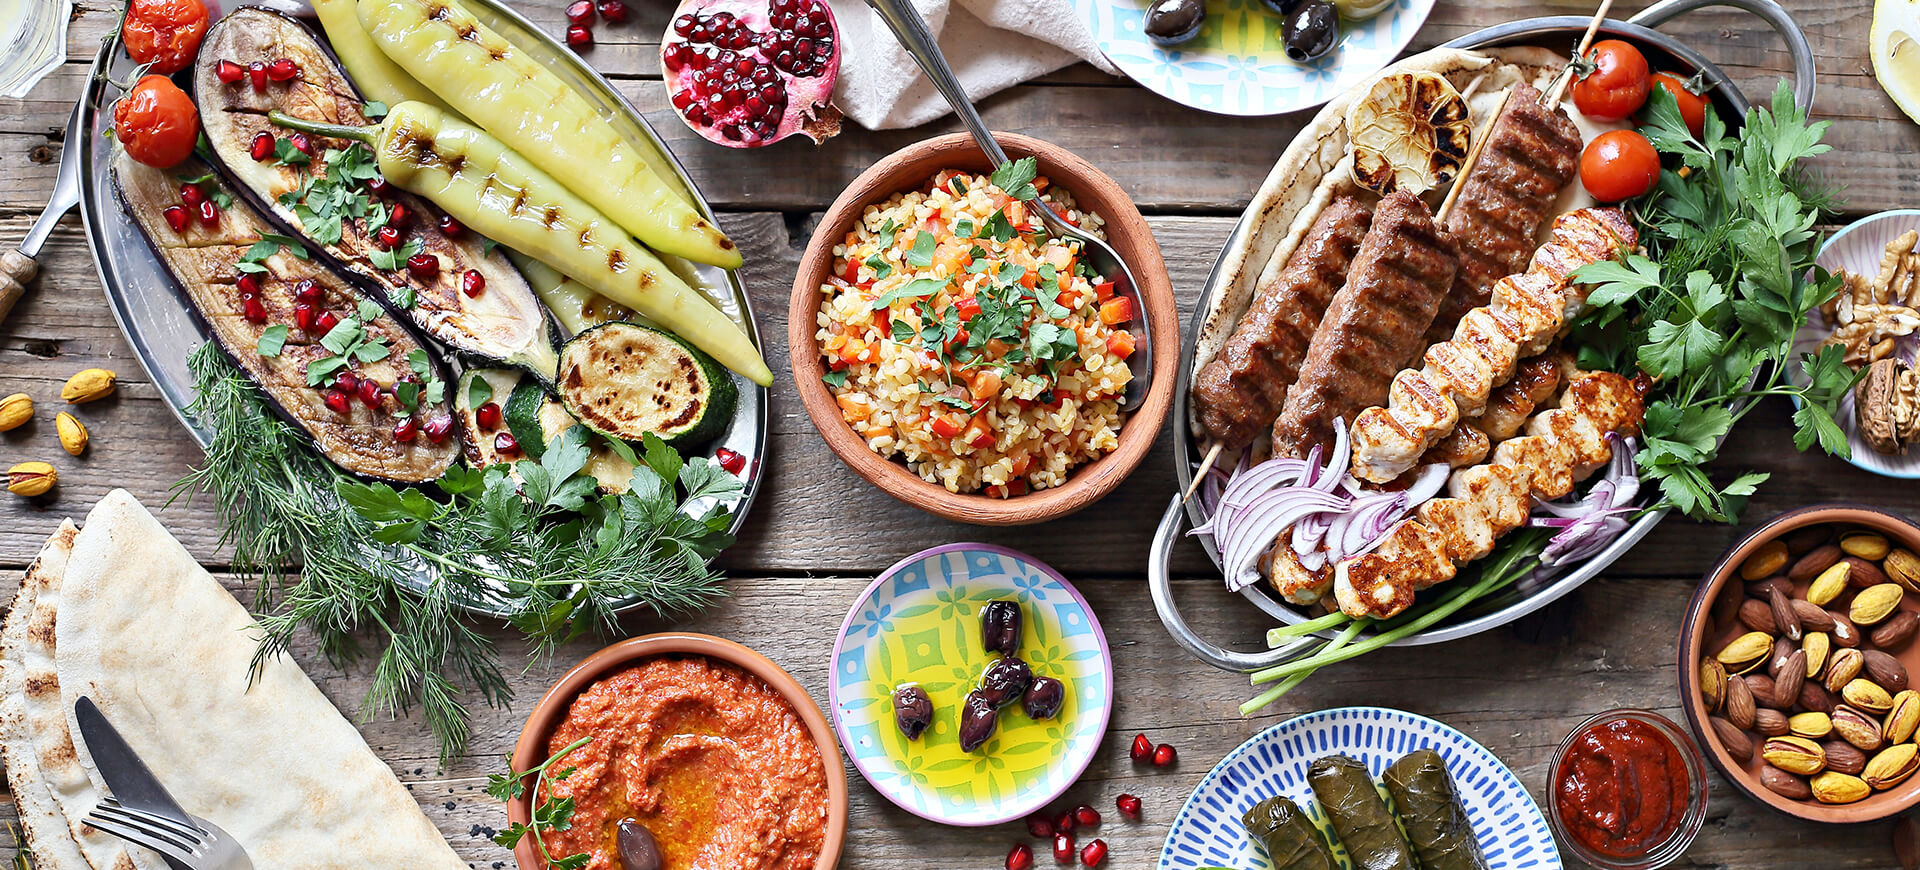 4 Recipes For A Mediterranean Style Party